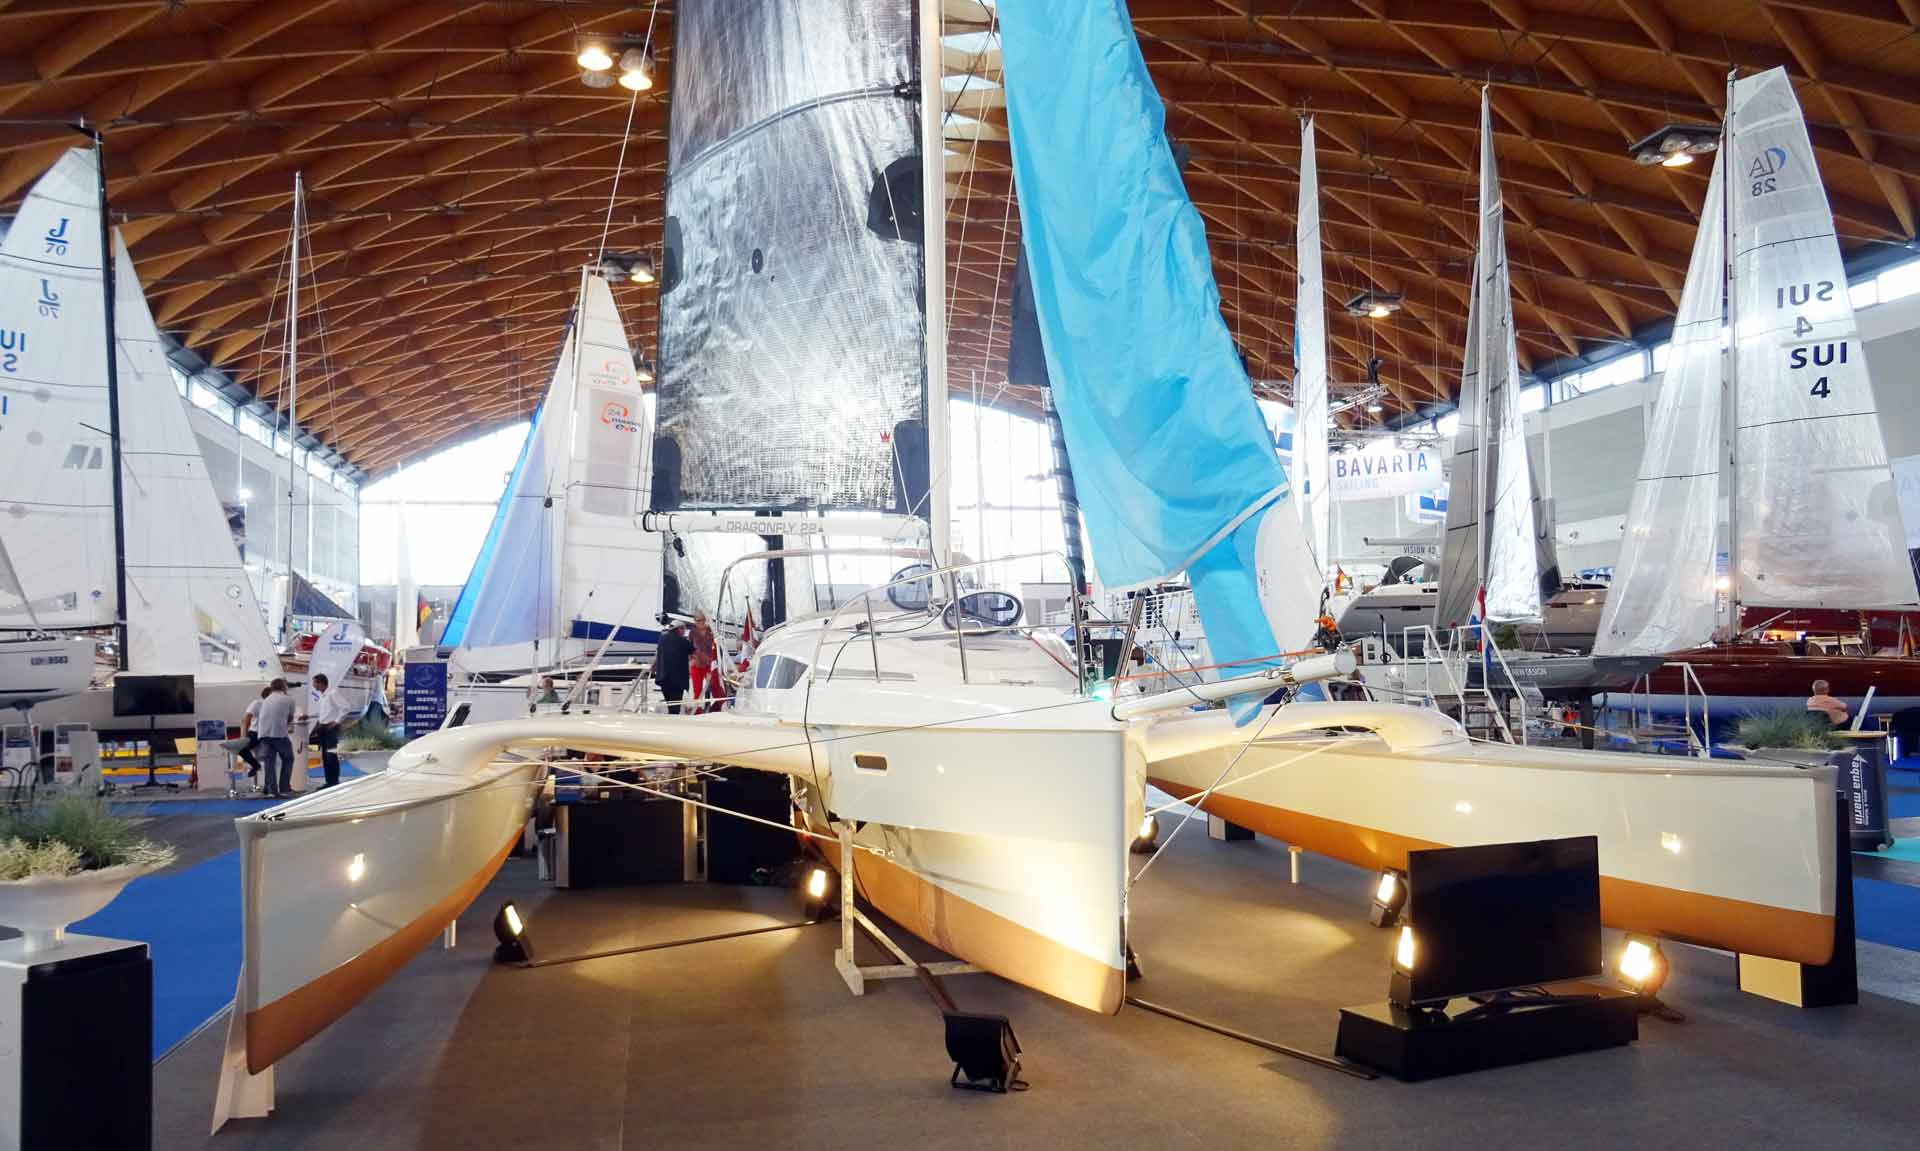 Made to sail fast: The Dragonfly 25 trimaran